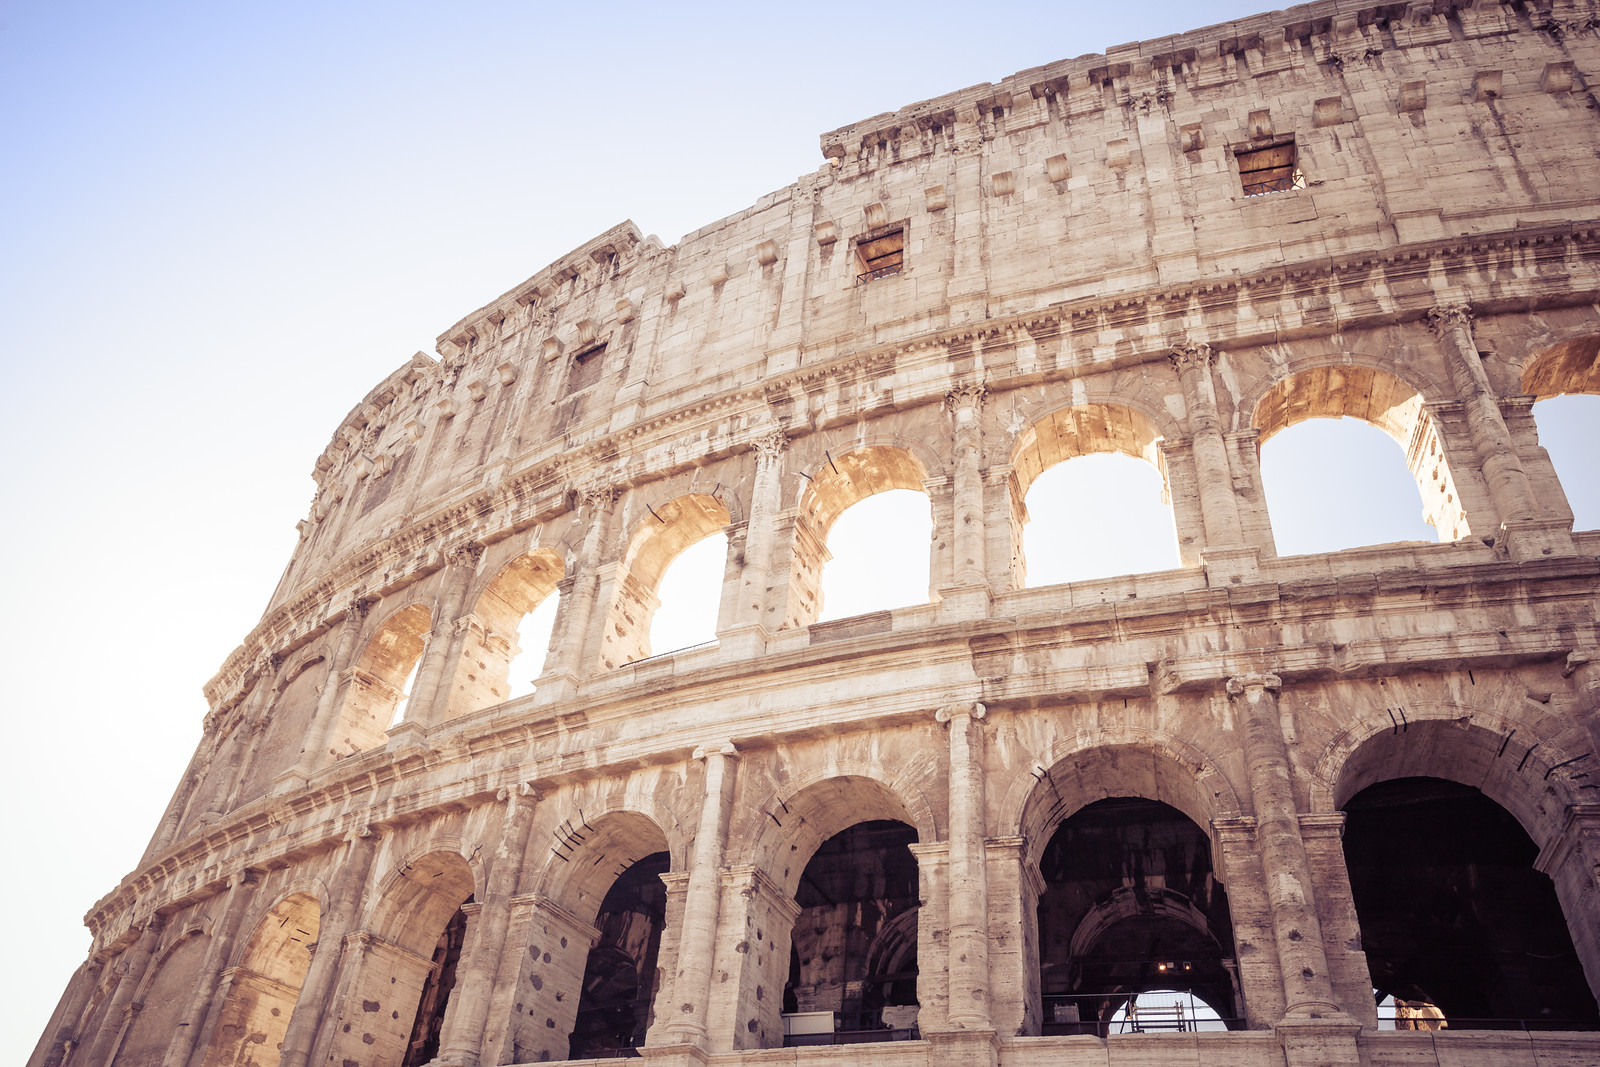 Outside the Colosseum in Rome